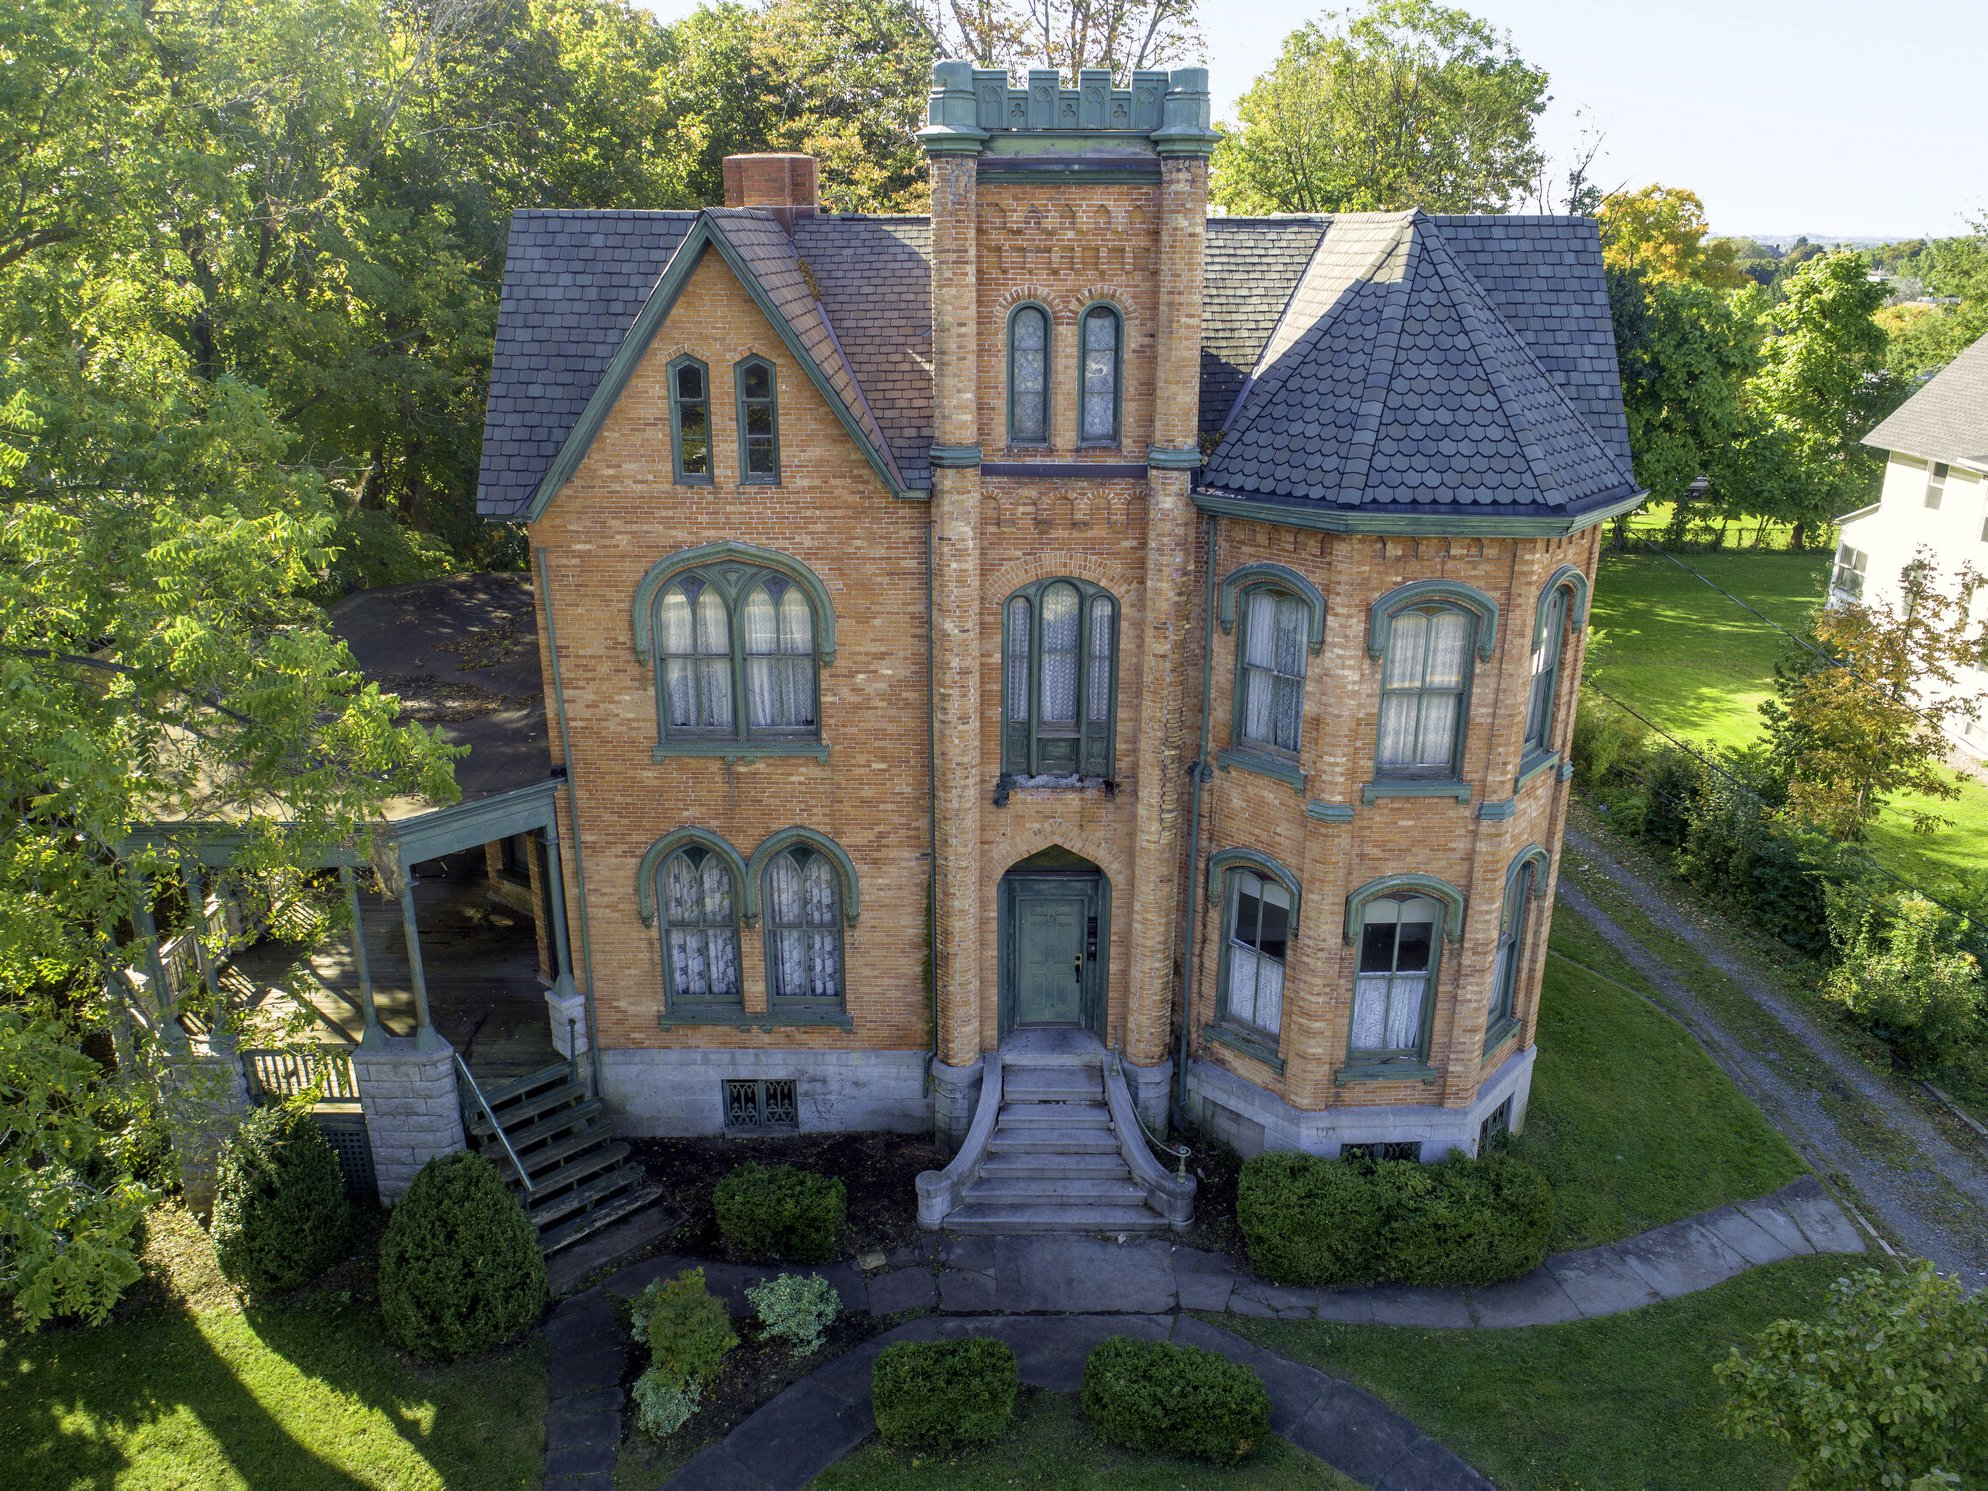 A Lonely New York Mansion For Sale, Possibly Haunted, Still a Rare Steal